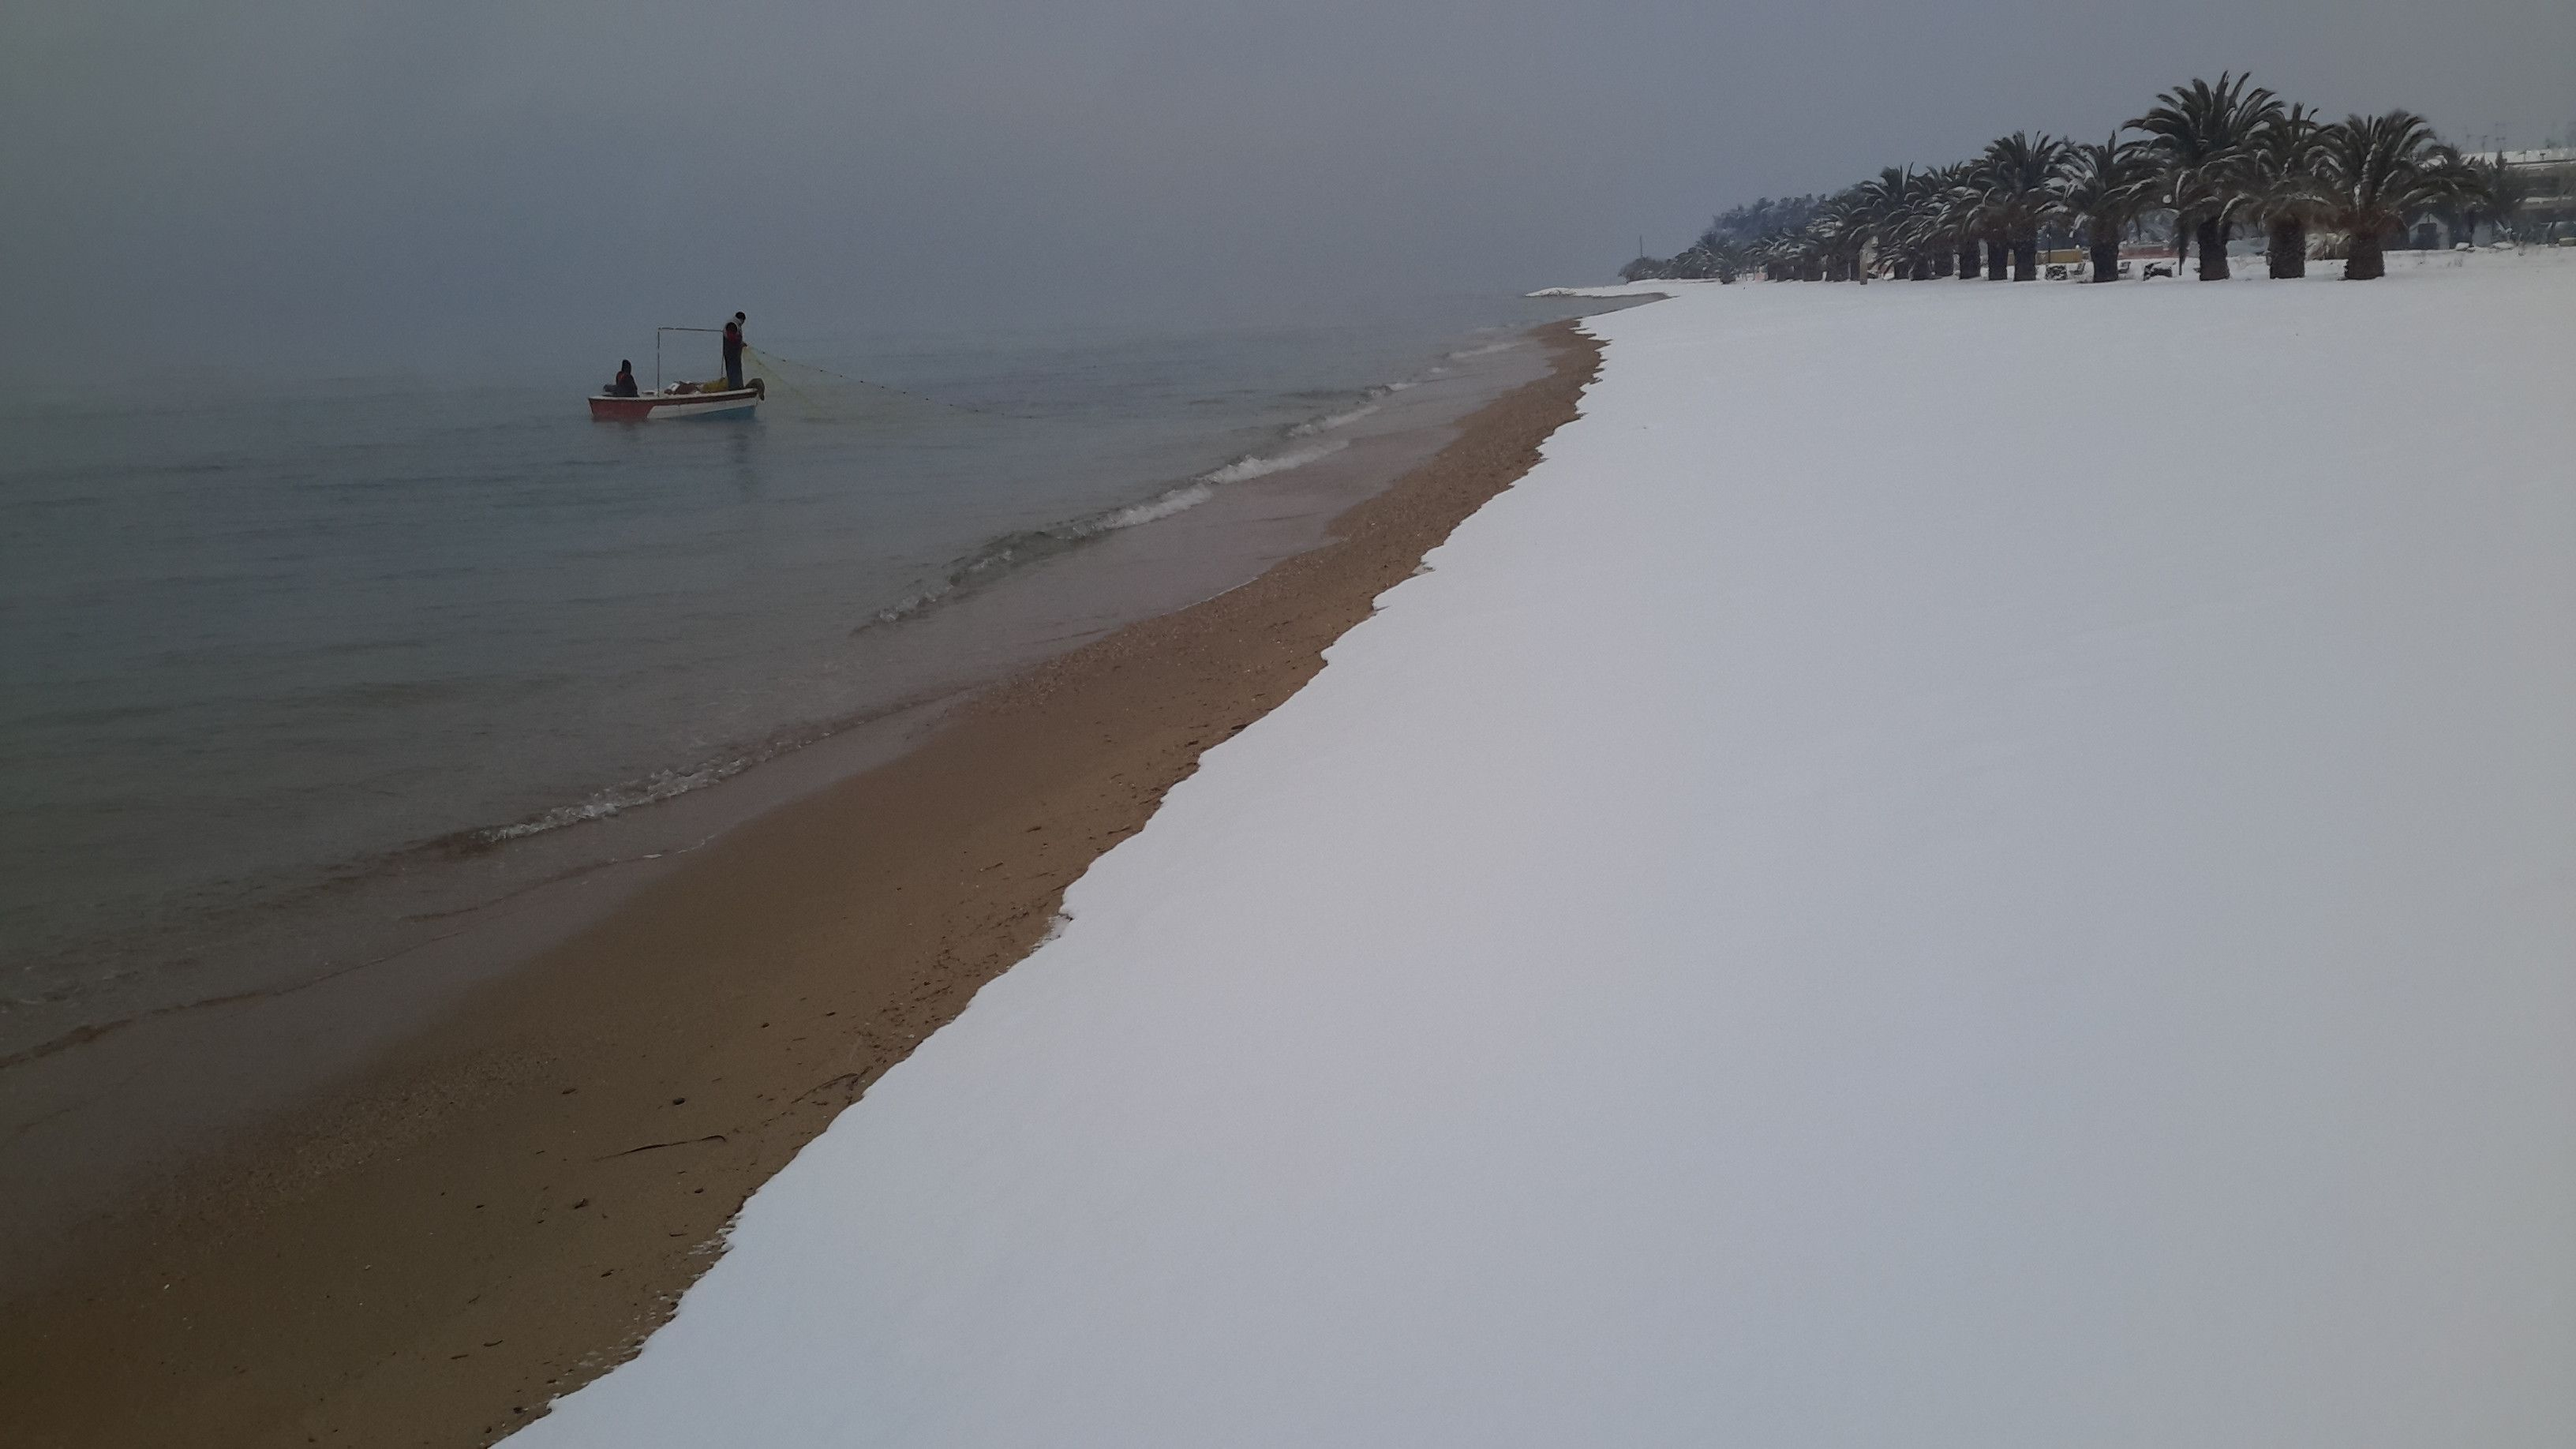 A Snow Covered Beach In Chalkidiki